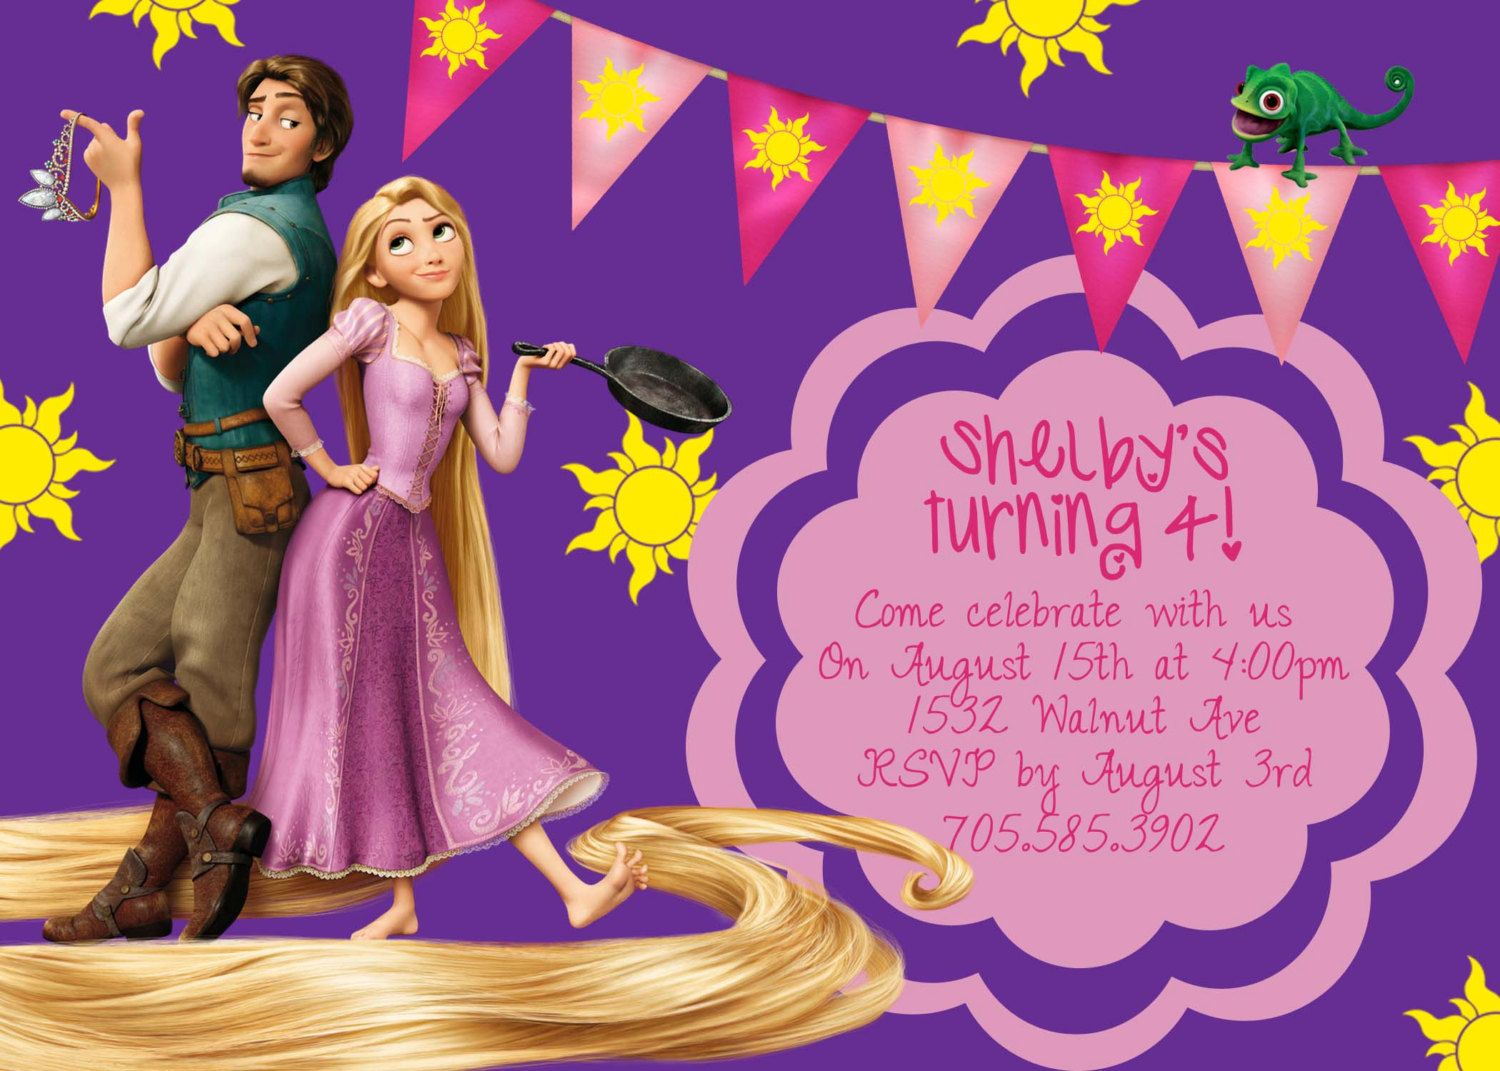 Tangled Rapunzel Purple Birthday Invite Card Can be Personalized – Invitation Greetings for Birthdays